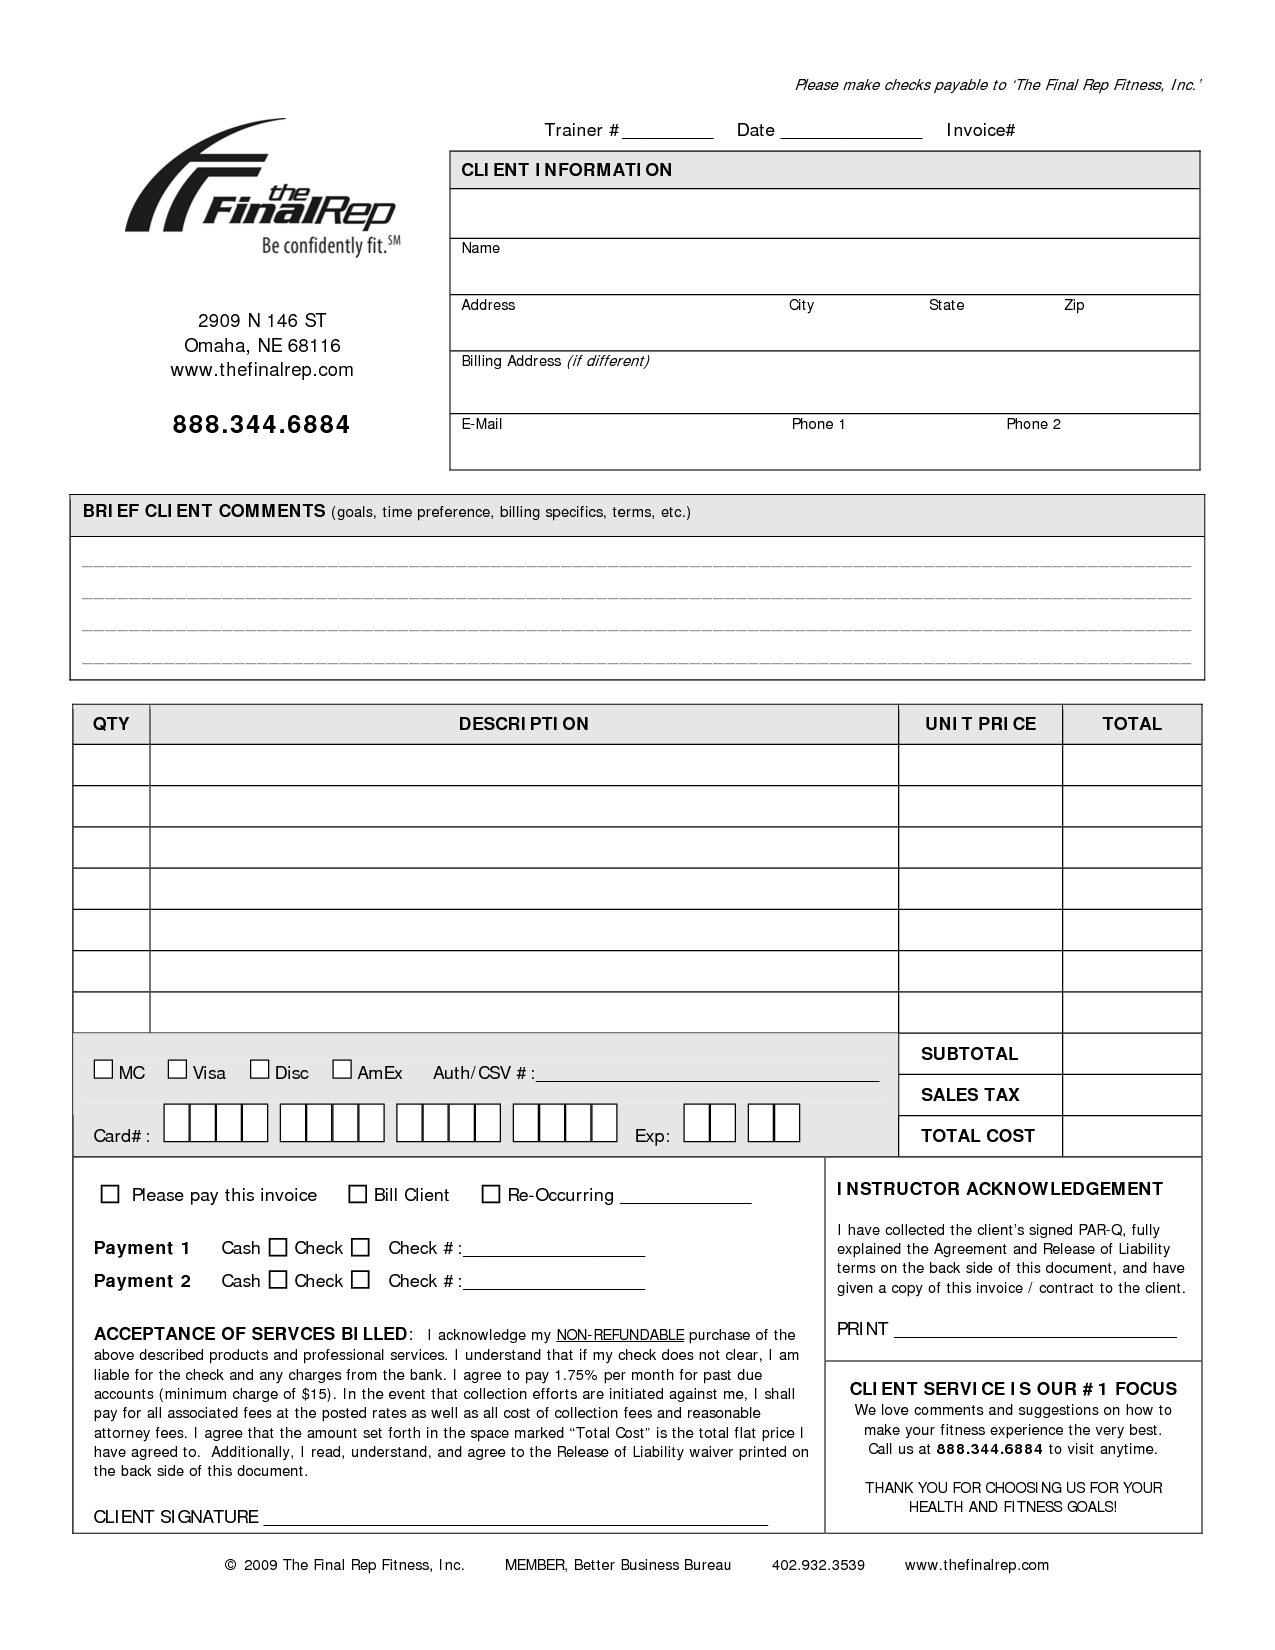 Personal invoice template invoice example for Personal trainer workout template